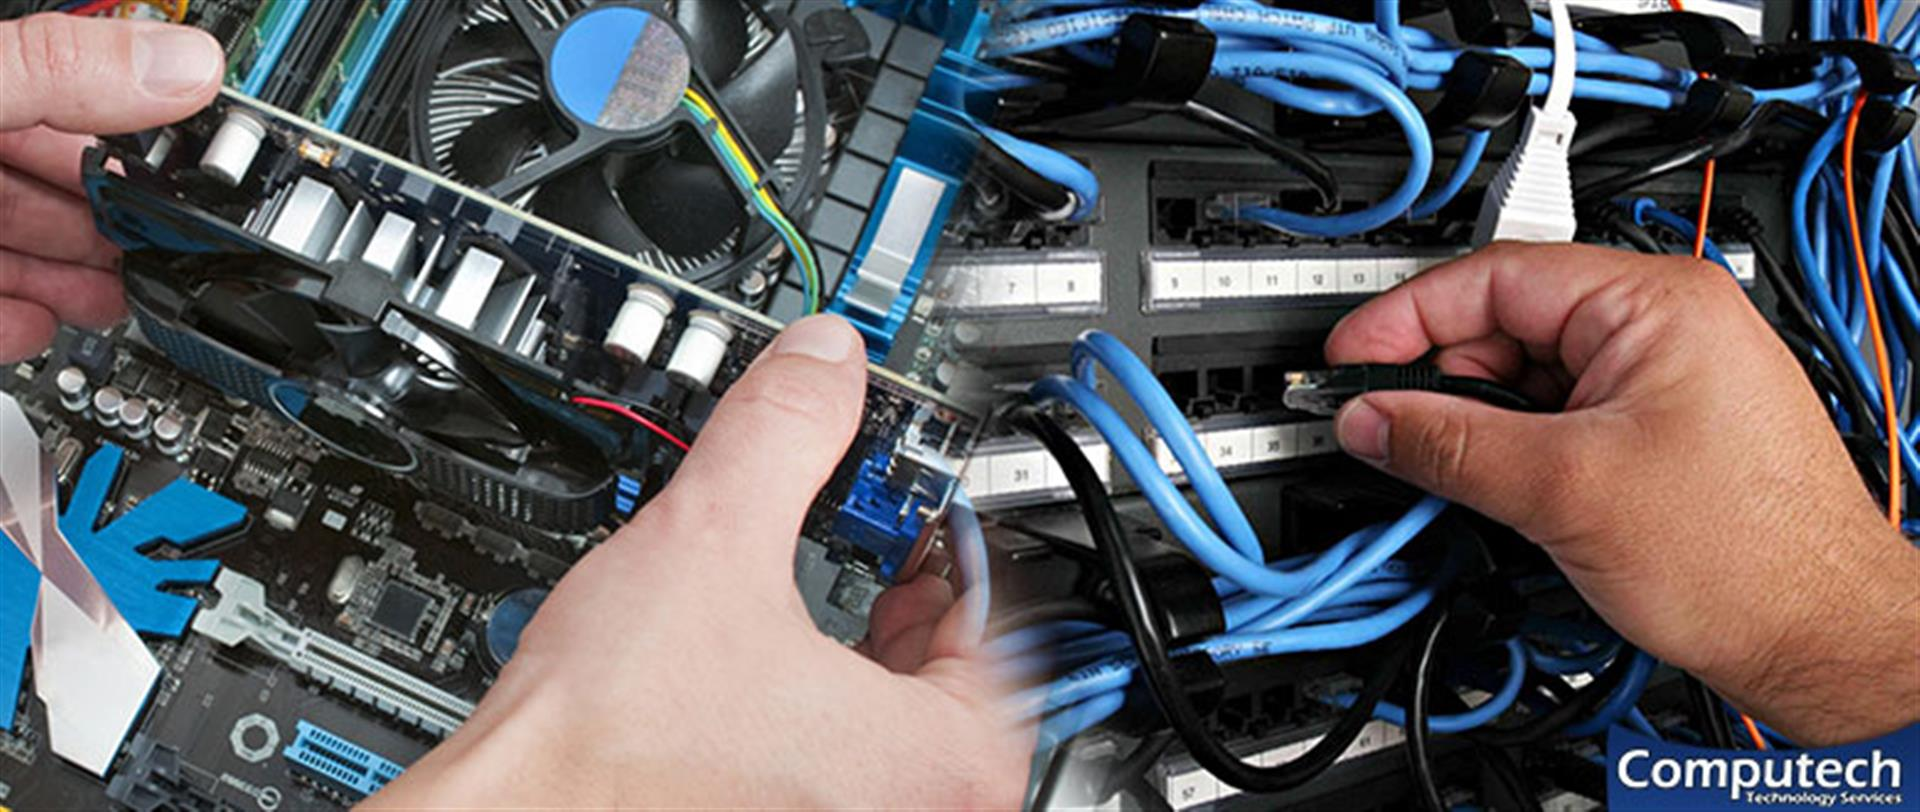 Villa Rica Georgia On Site Computer & Printer Repairs, Network, Voice & Data Cabling Solutions